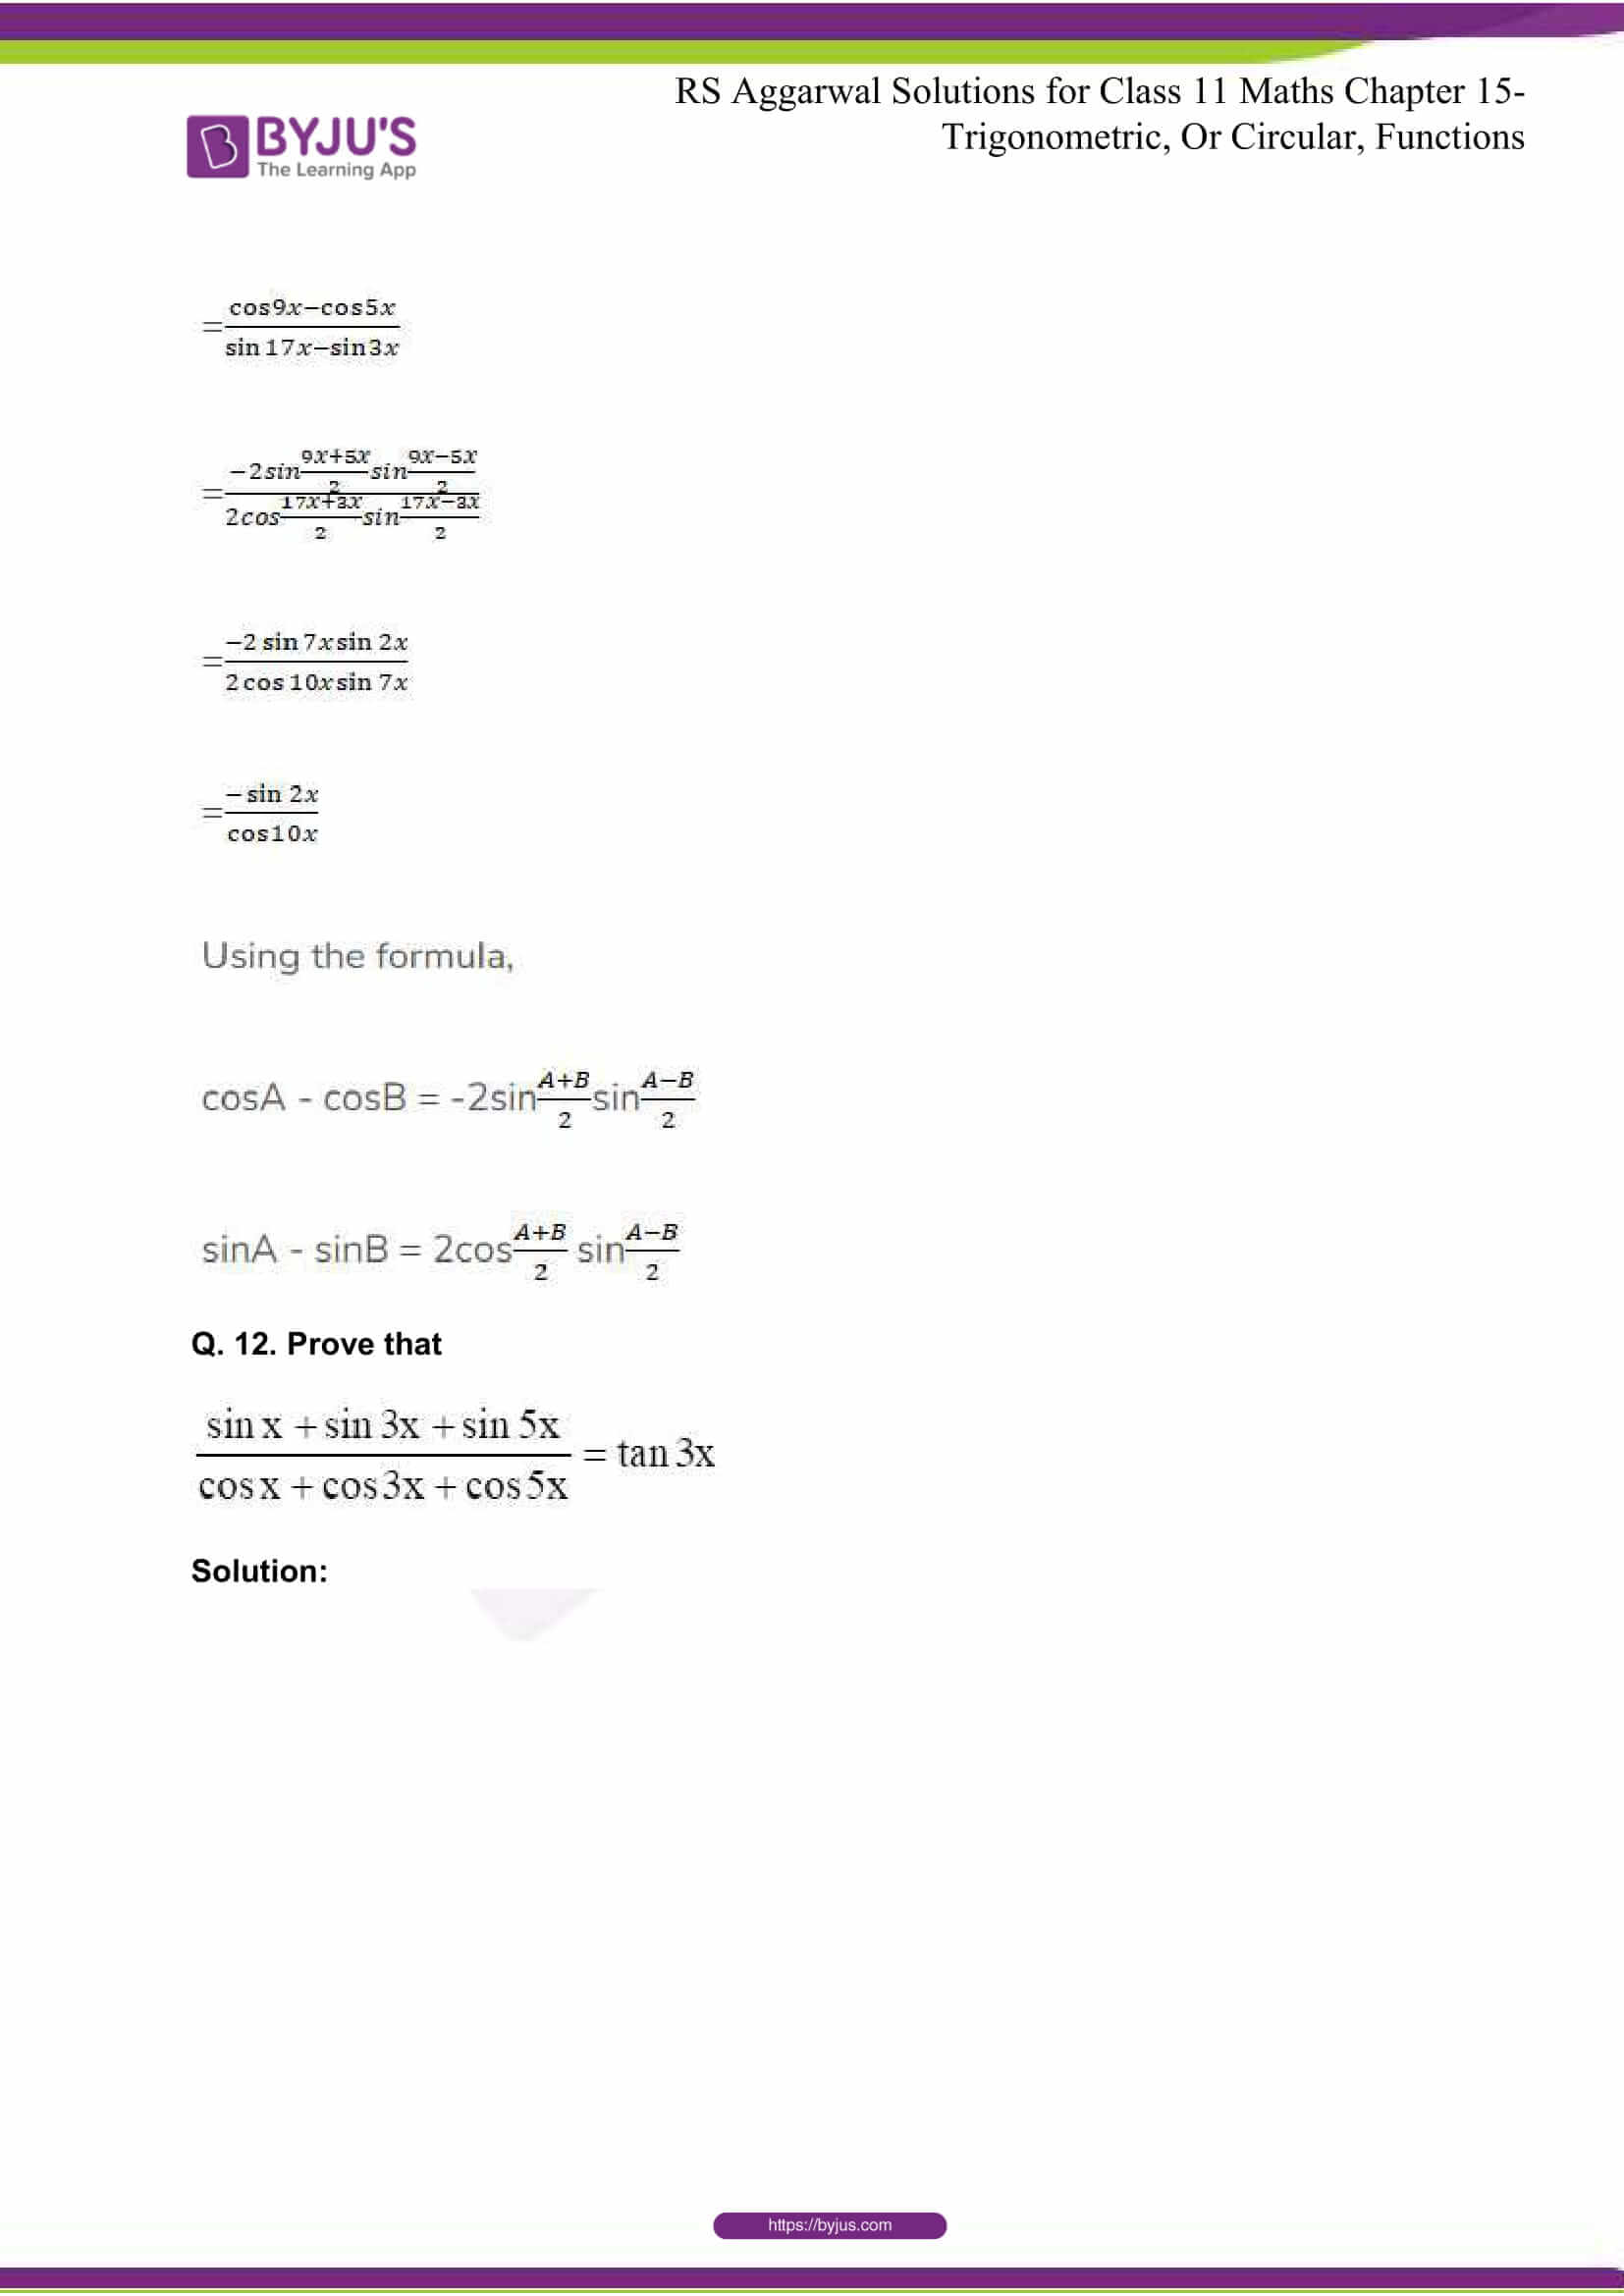 rsaggarwal solutions class 11 maths chapter 15 059